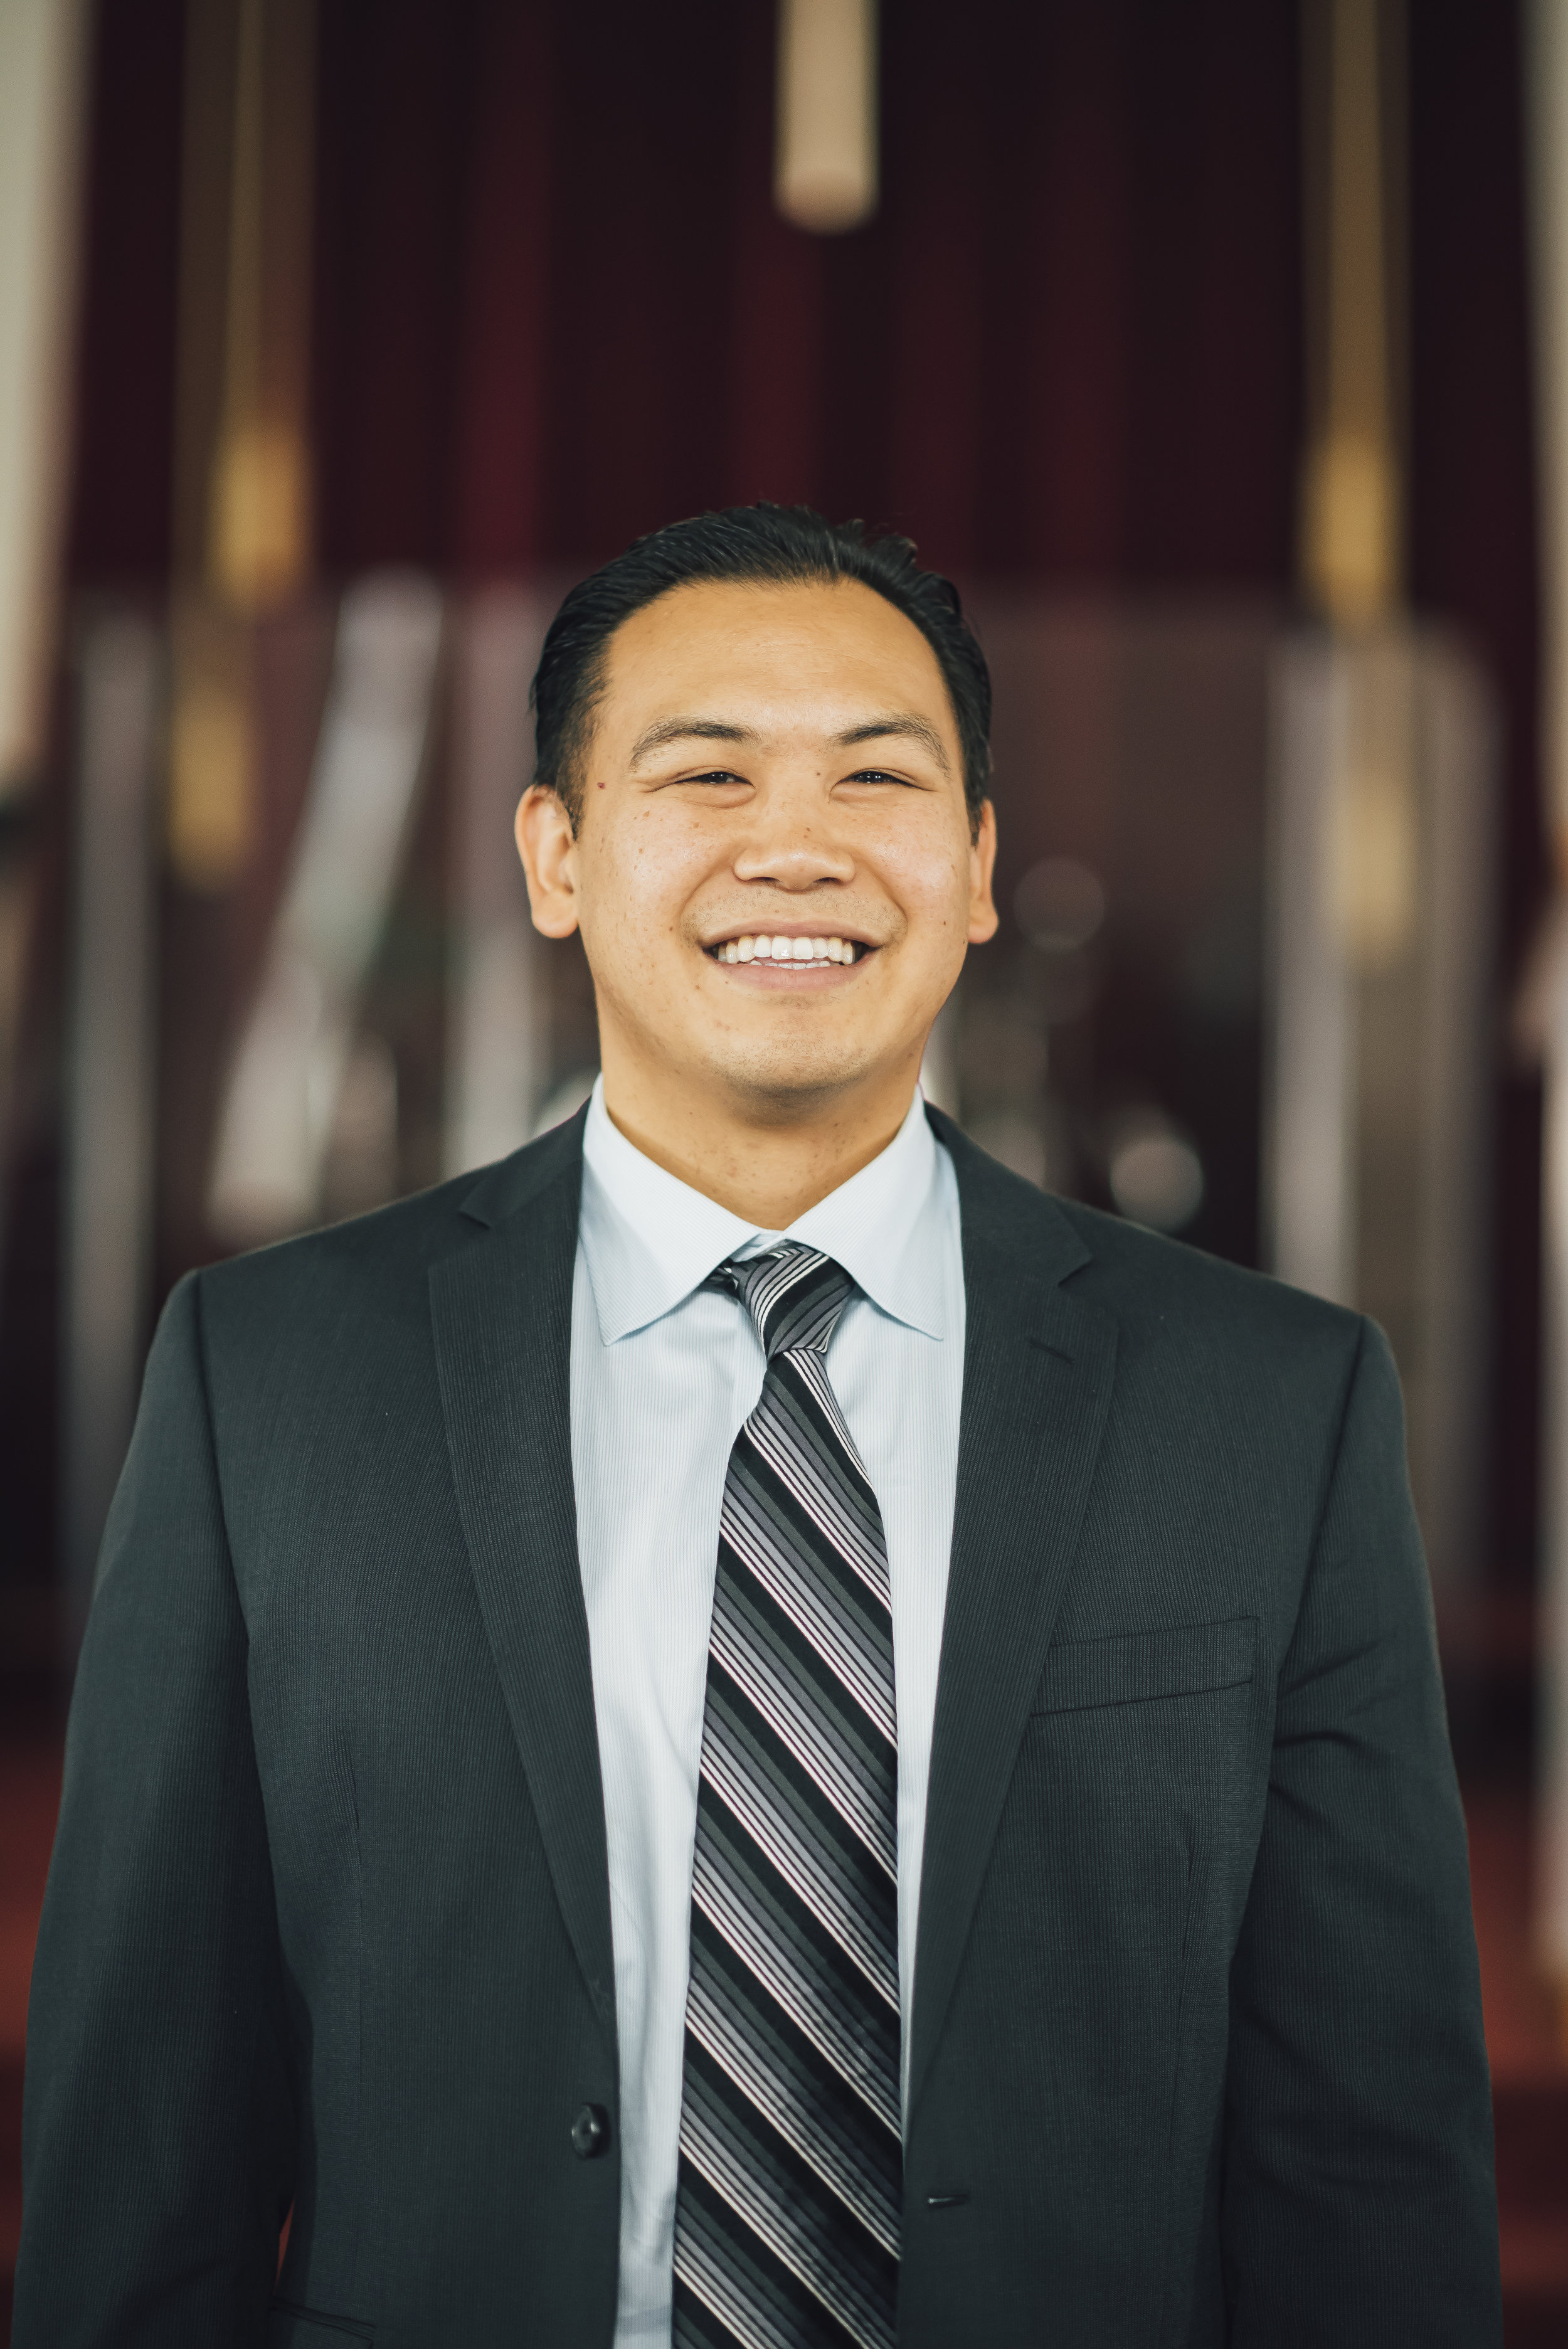 """Kevin Wong –Associate Pastor - Kevin came to faith in high school after talking with a youth leader and seeing himself in the story of the prodigal son in Luke 15. Starting in lay youth ministry in 1999, he served two """"tours"""" with a high school fellowship group. In the summer of 2005, Kevin discovered his deep burden for God's people and strong desire to teach others God's Word. Following God's calling, a year later, Kevin quit his job and pursued pastoral ministry. He was licensed as a Youth Pastor in 2007, and in 2014, Kevin graduated from Golden Gate Baptist Seminary. His passion is teaching the Bible, serving with people, and having spiritual conversations. He is happily married to Vivian, and they have two daughters and one son."""